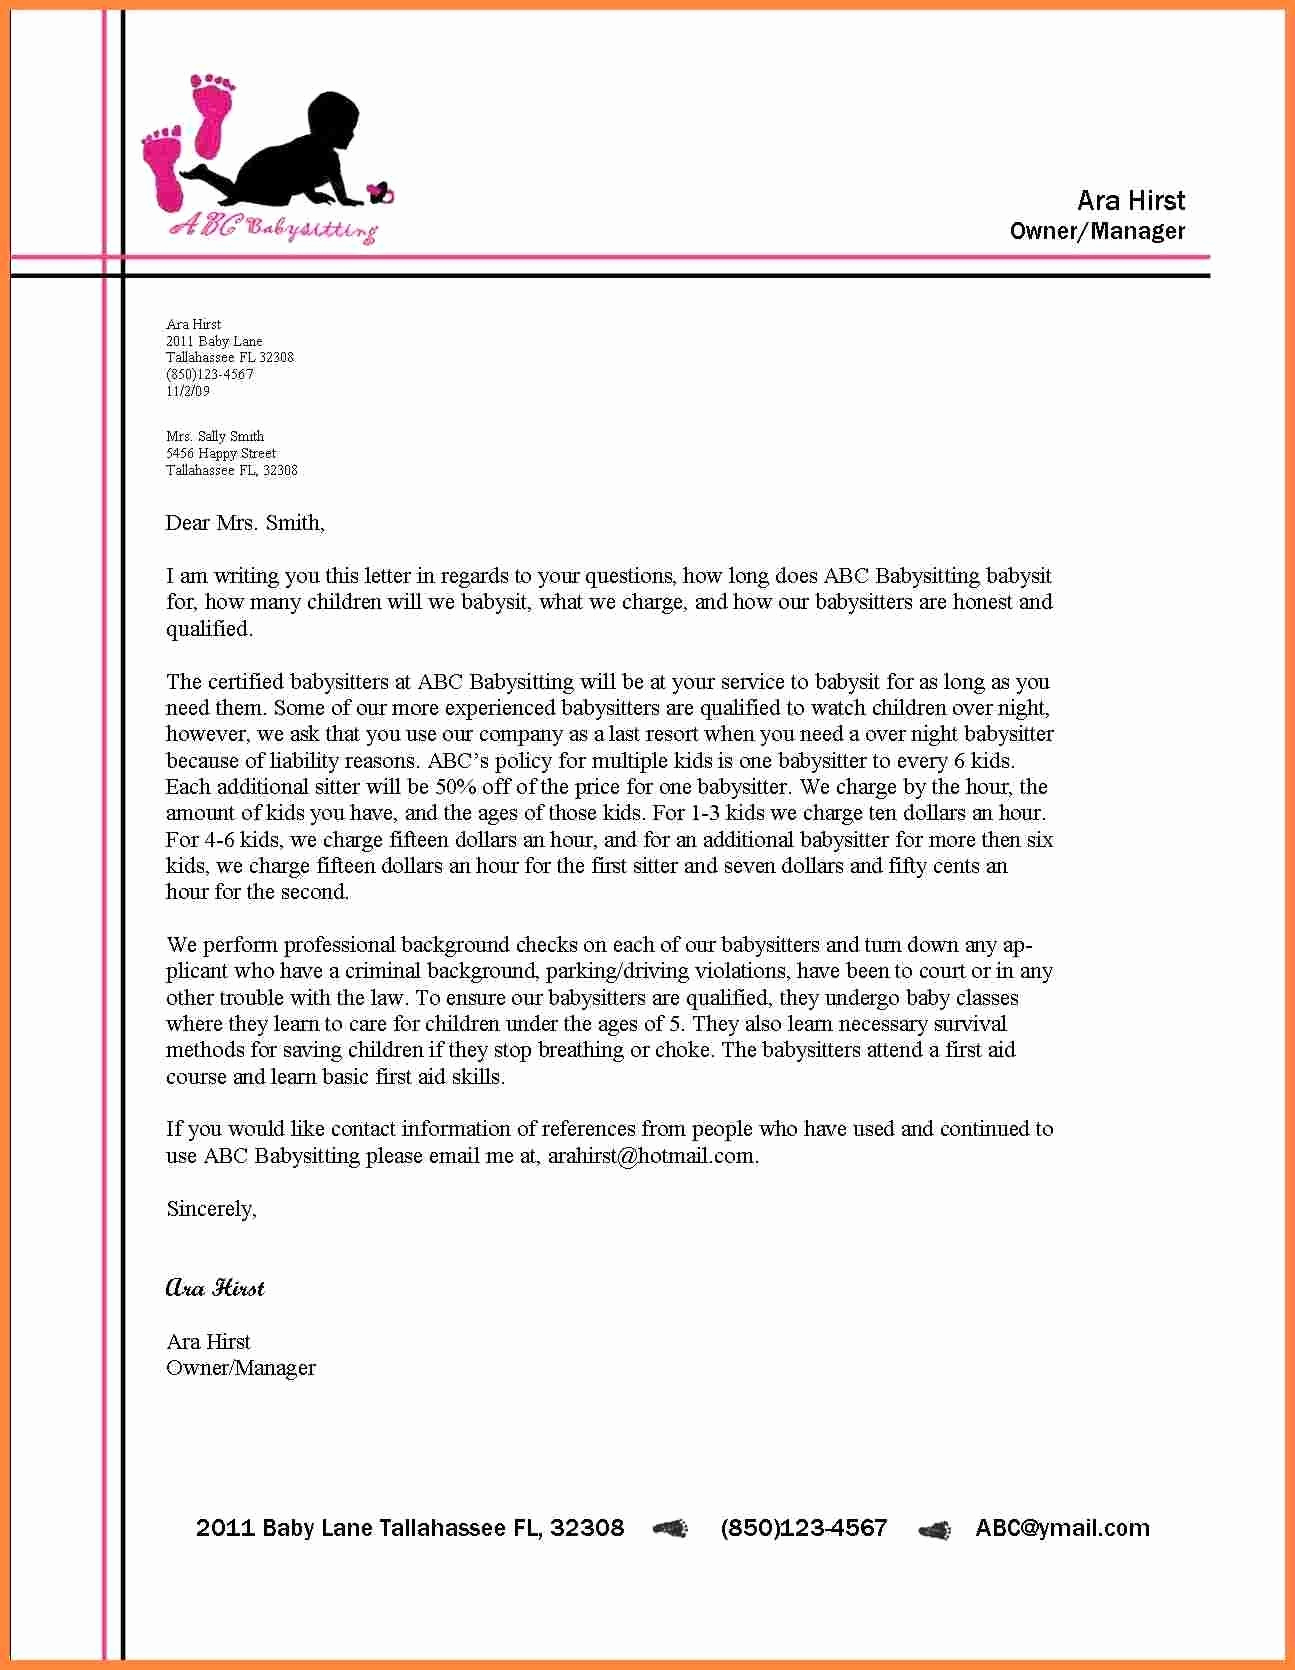 Format Of Business Letter New formal Letter format with Letterhead 2018